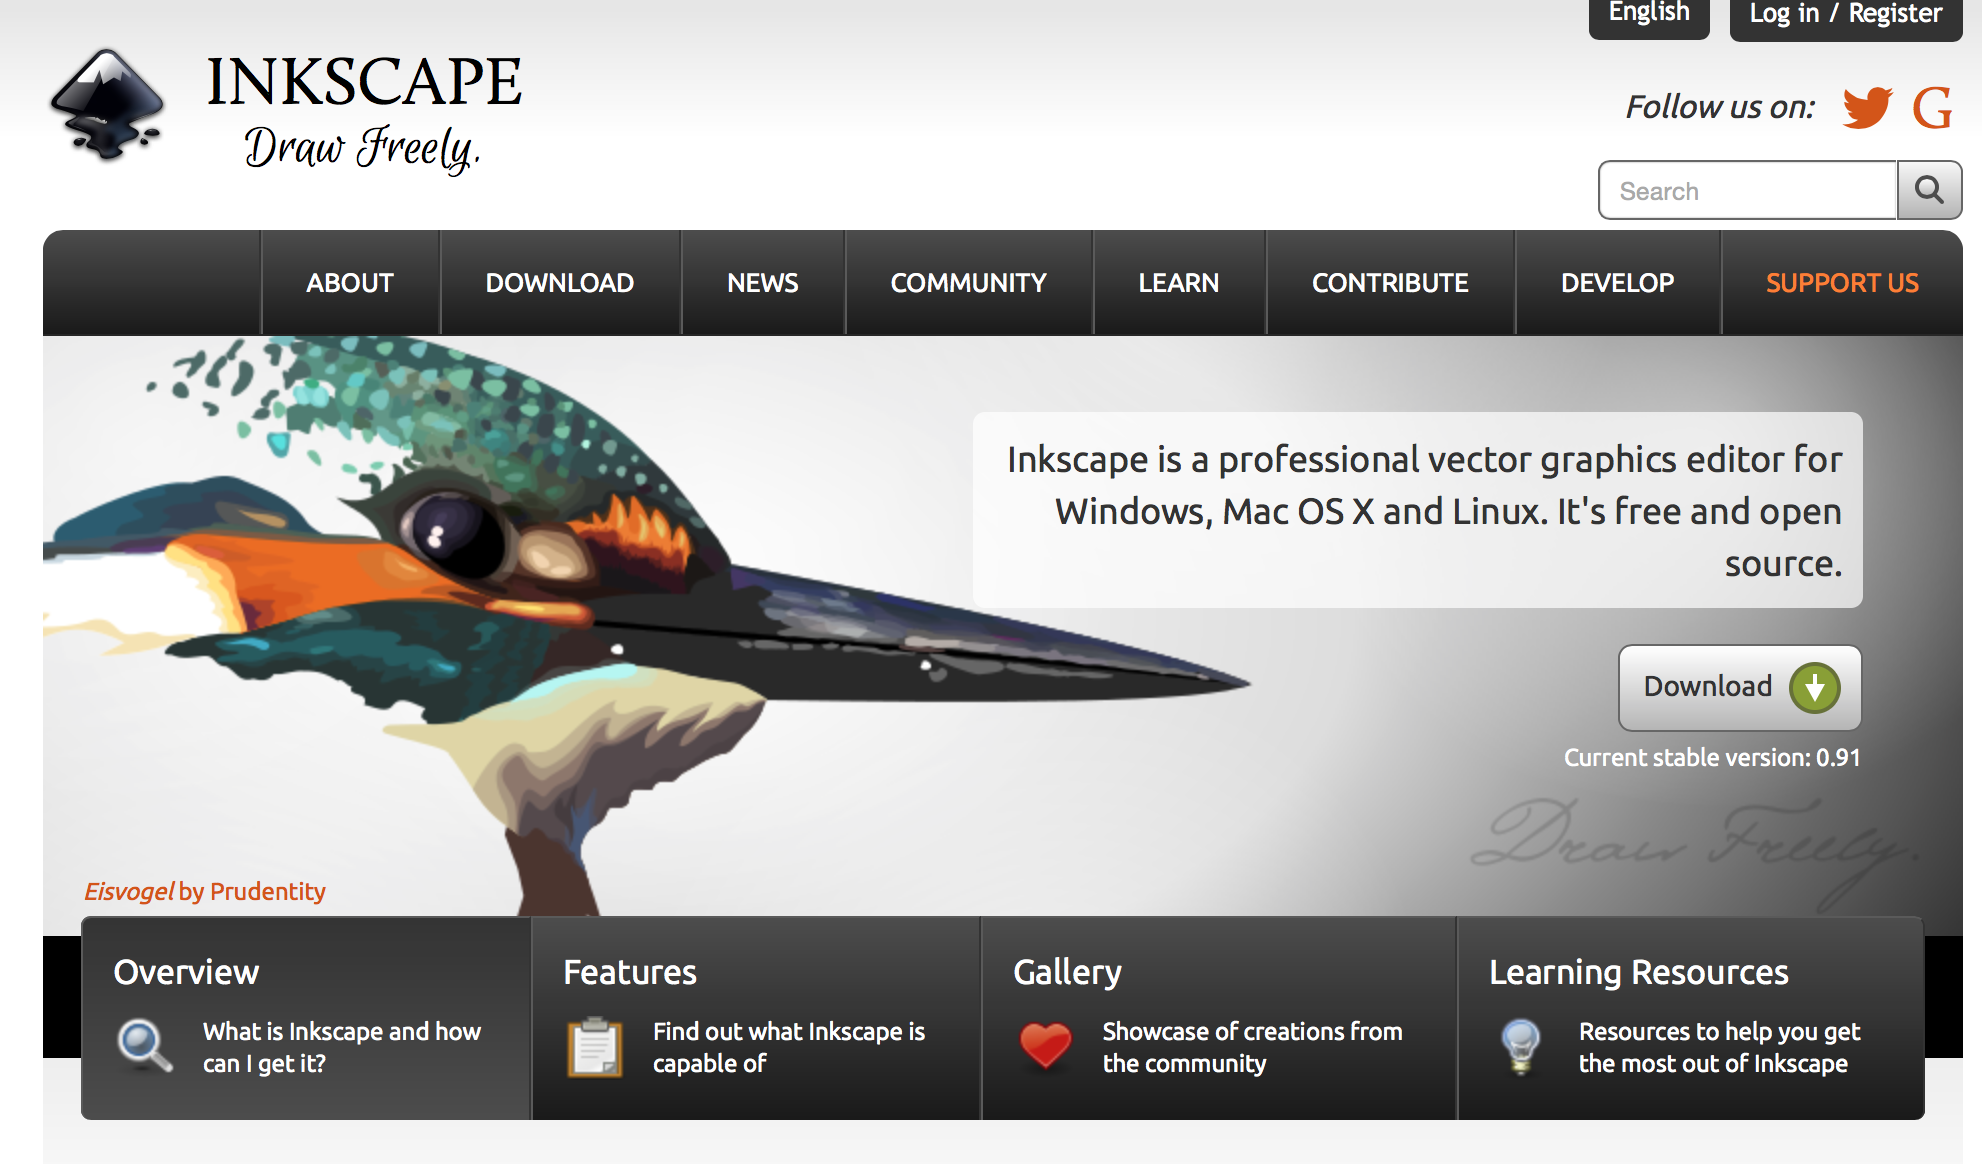 Inkscape is a professional vector graphics editor for